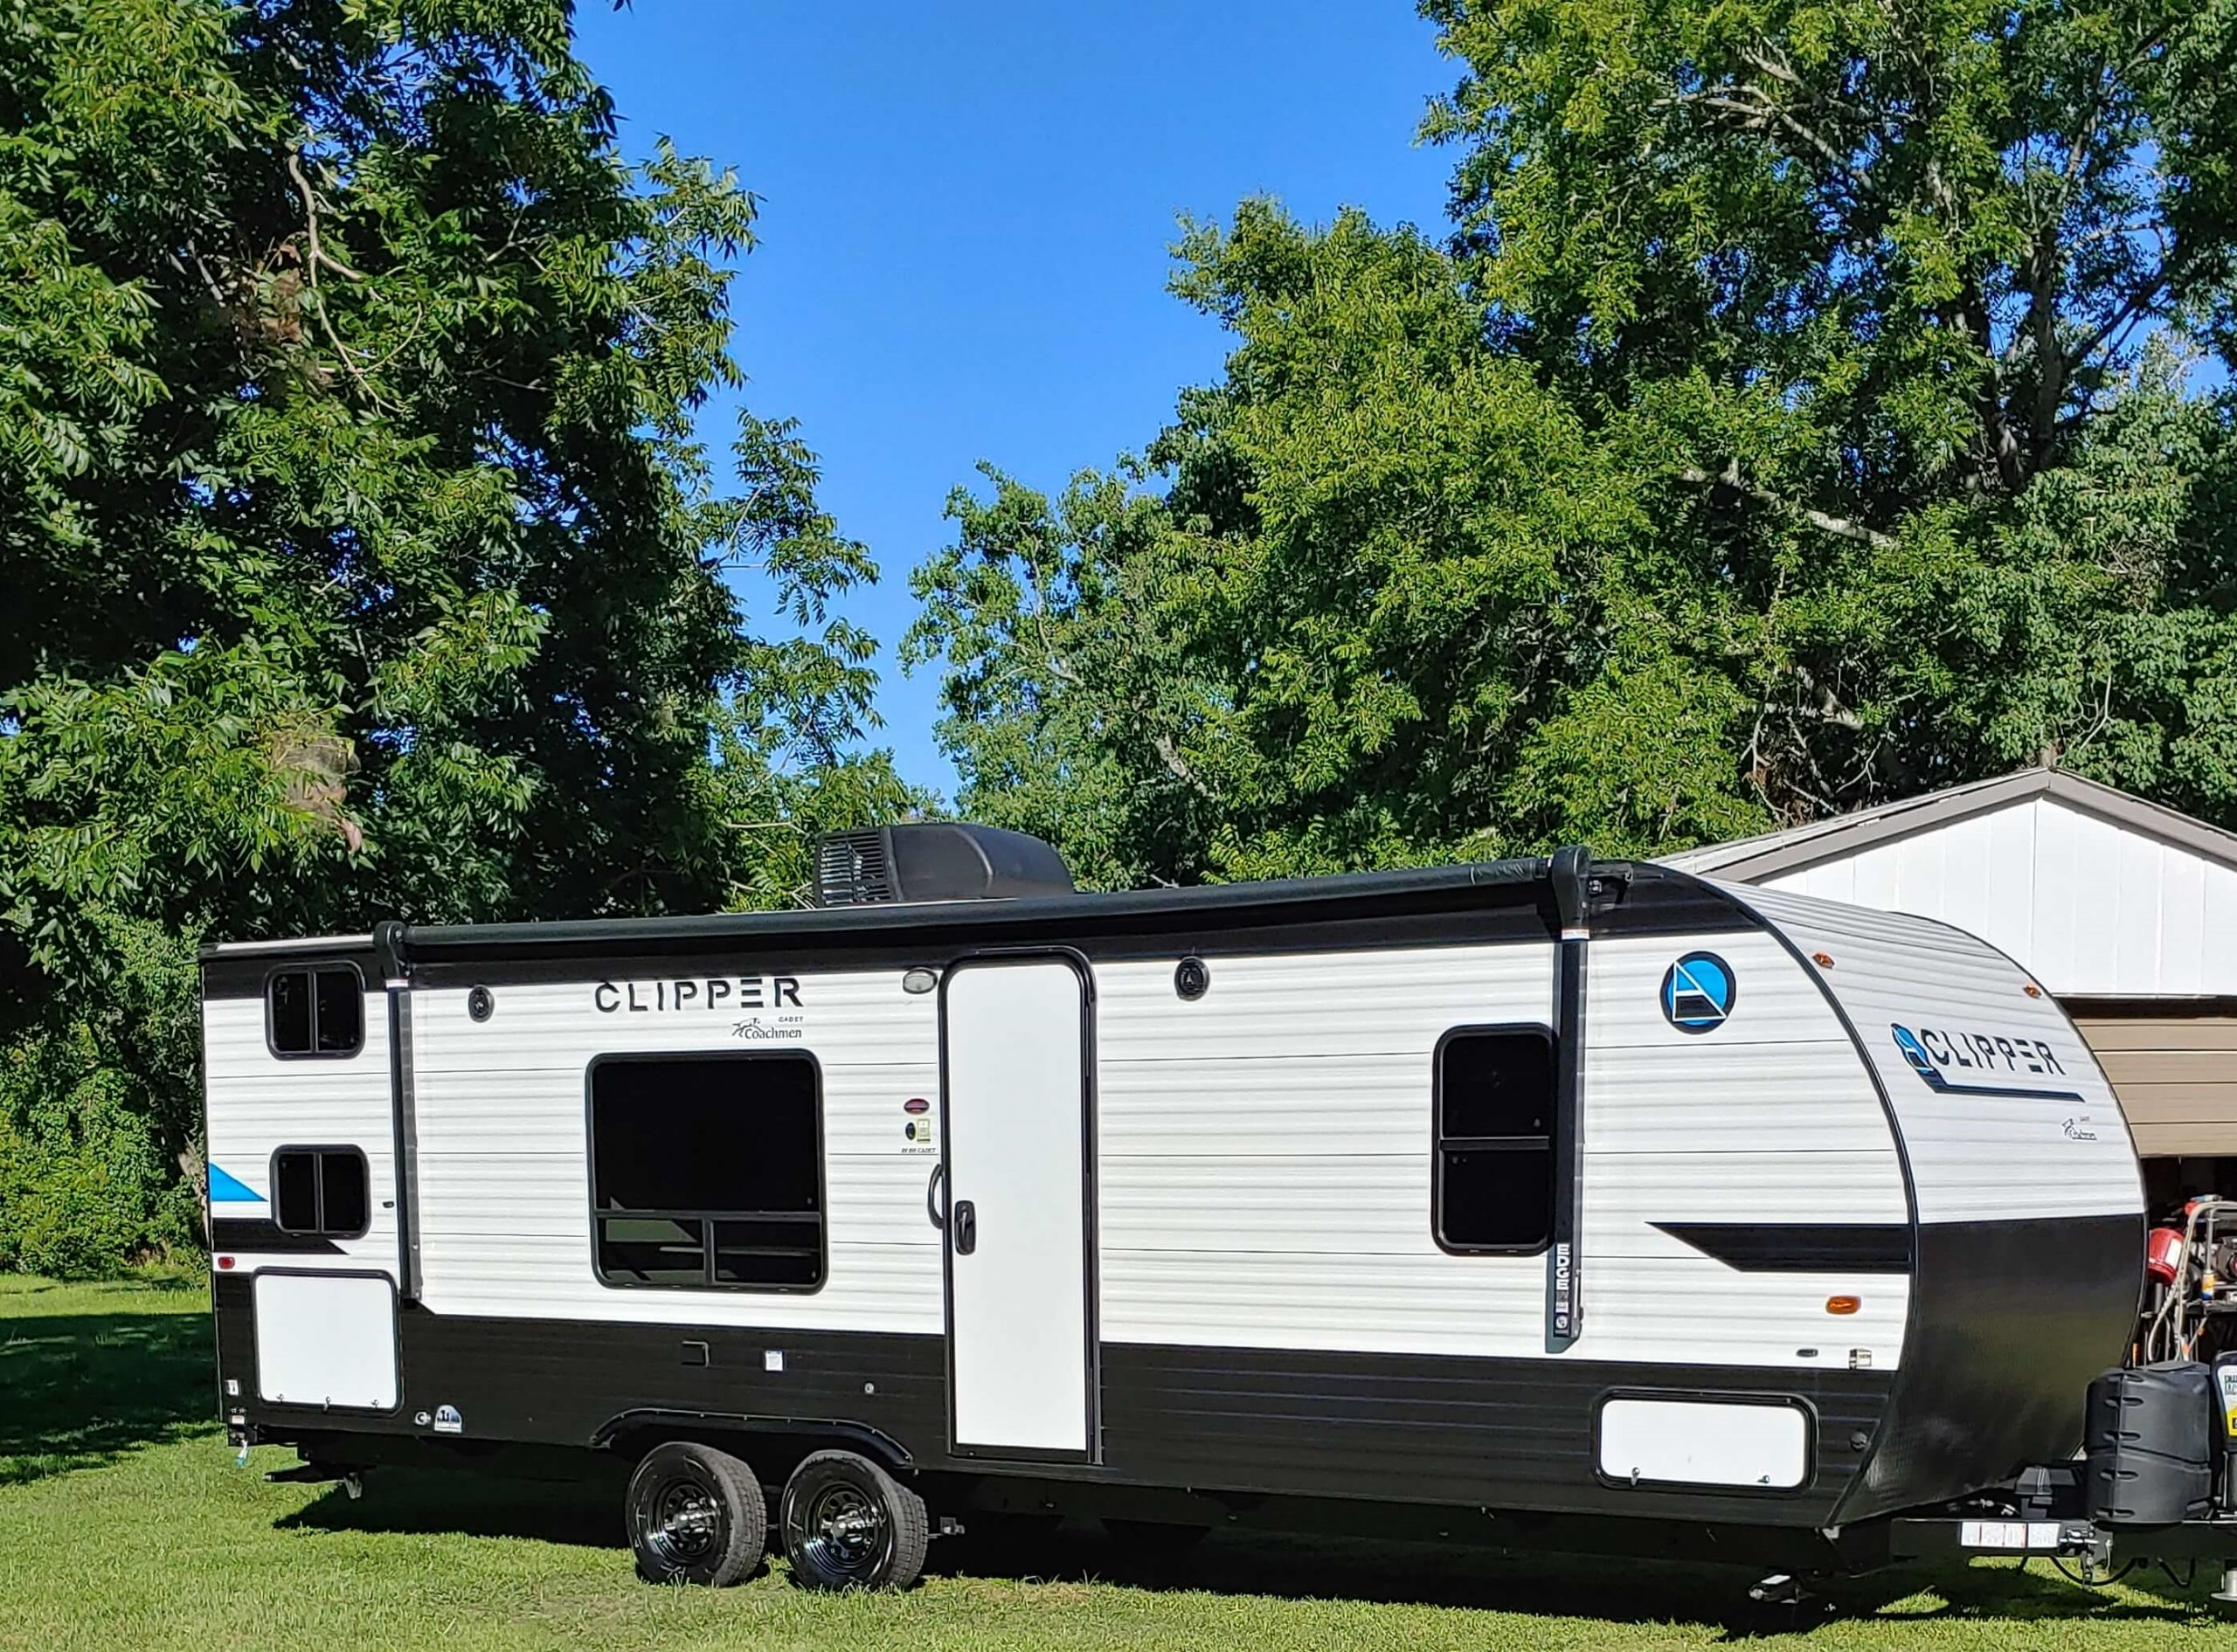 New Adventures With Our Travel Trailer!